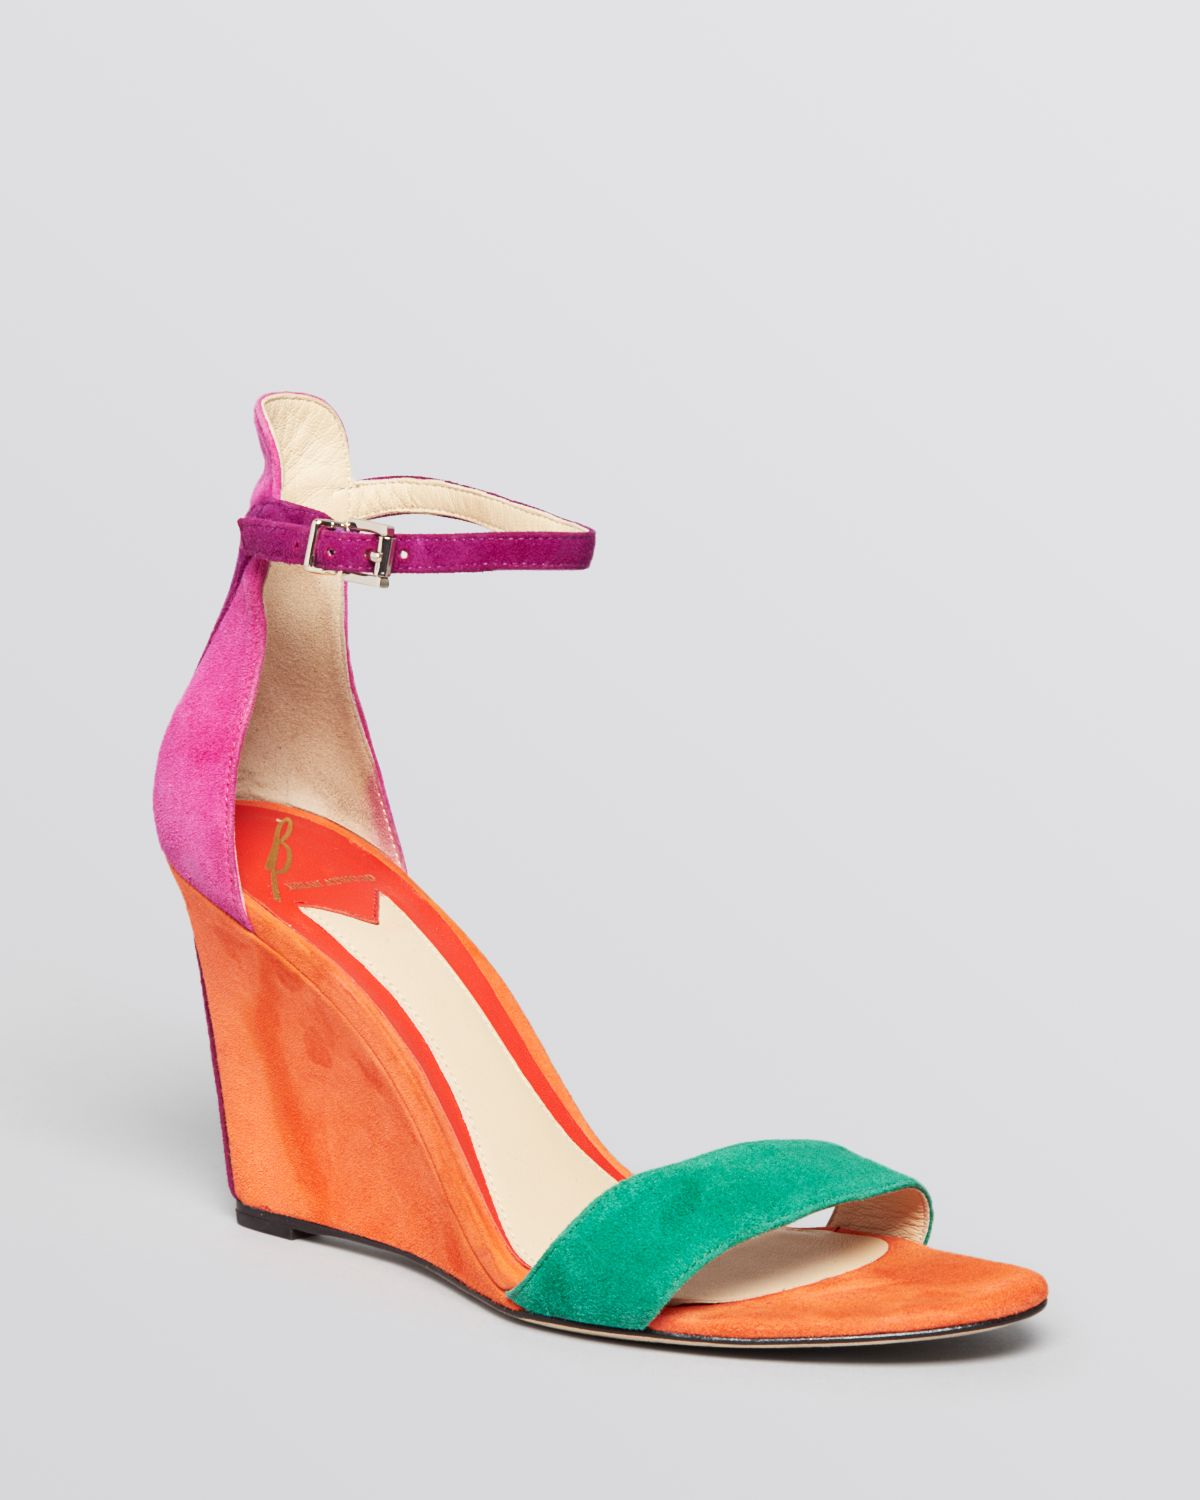 new arrival B Brian Atwood Woven Wedge Sandals outlet new arrival cheap visa payment sale prices fast delivery gSZfWt